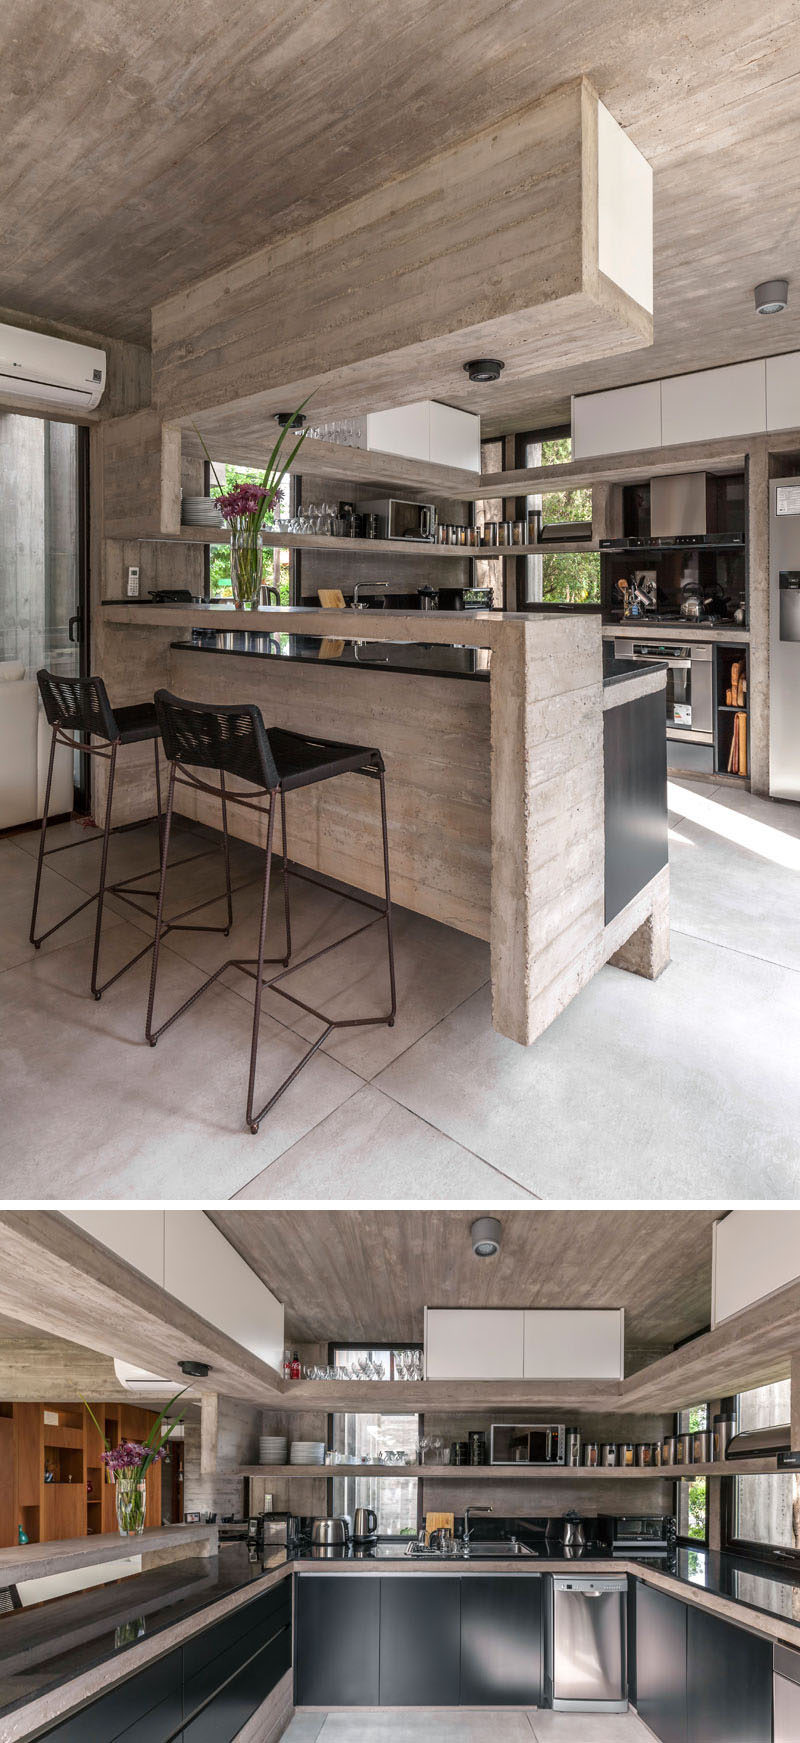 In this kitchen, black cabinets and countertops have been combined with concrete shelving to create a modern appearance. #ConcreteKitchen #BlackCabinets